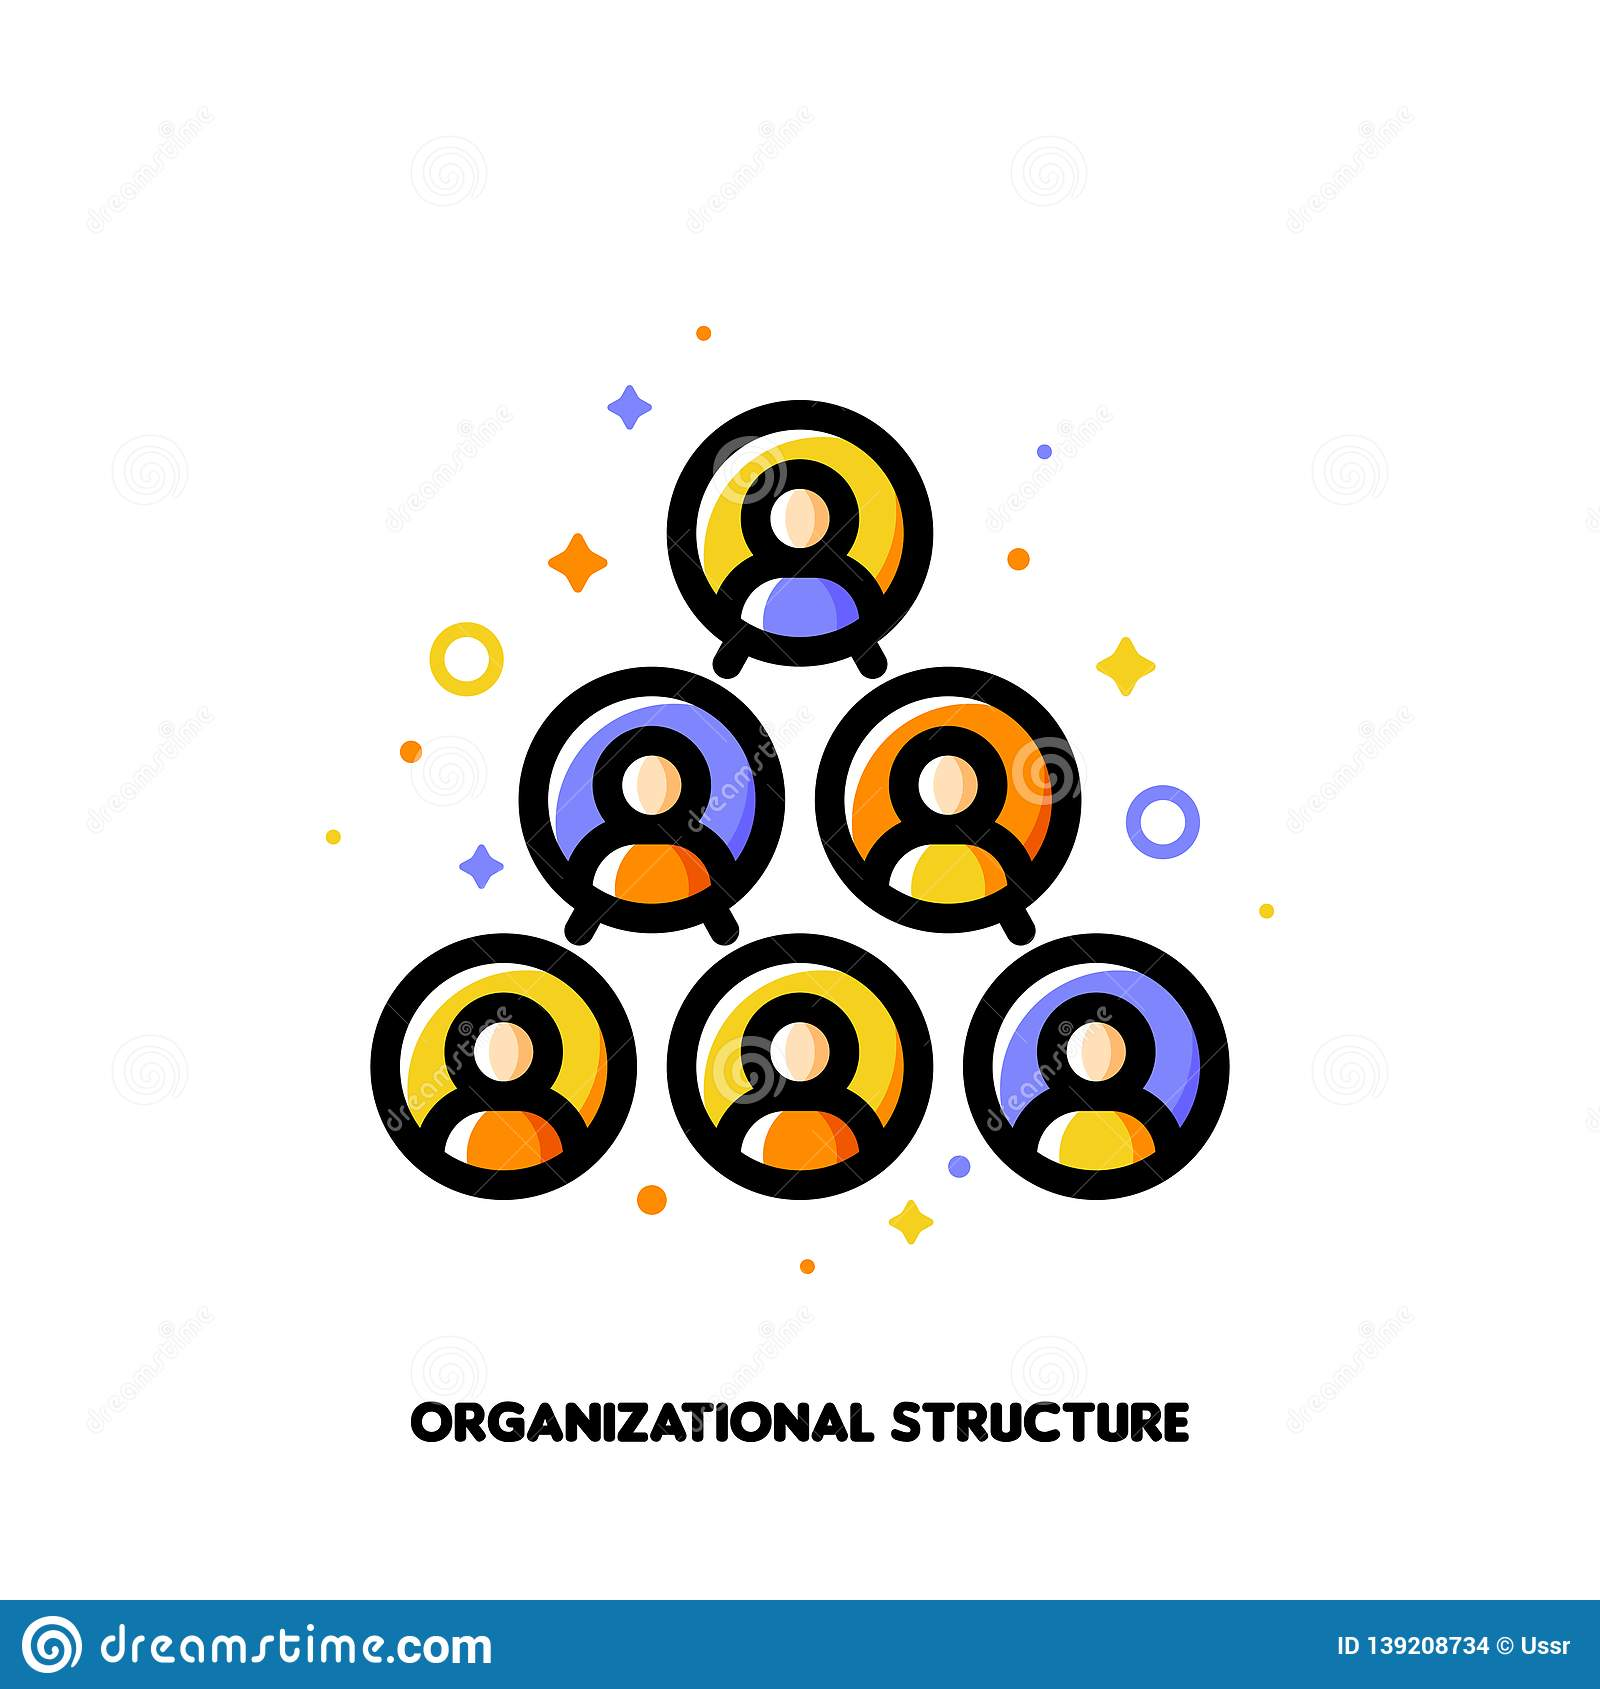 Company Organizational Structure Icon For Corporate